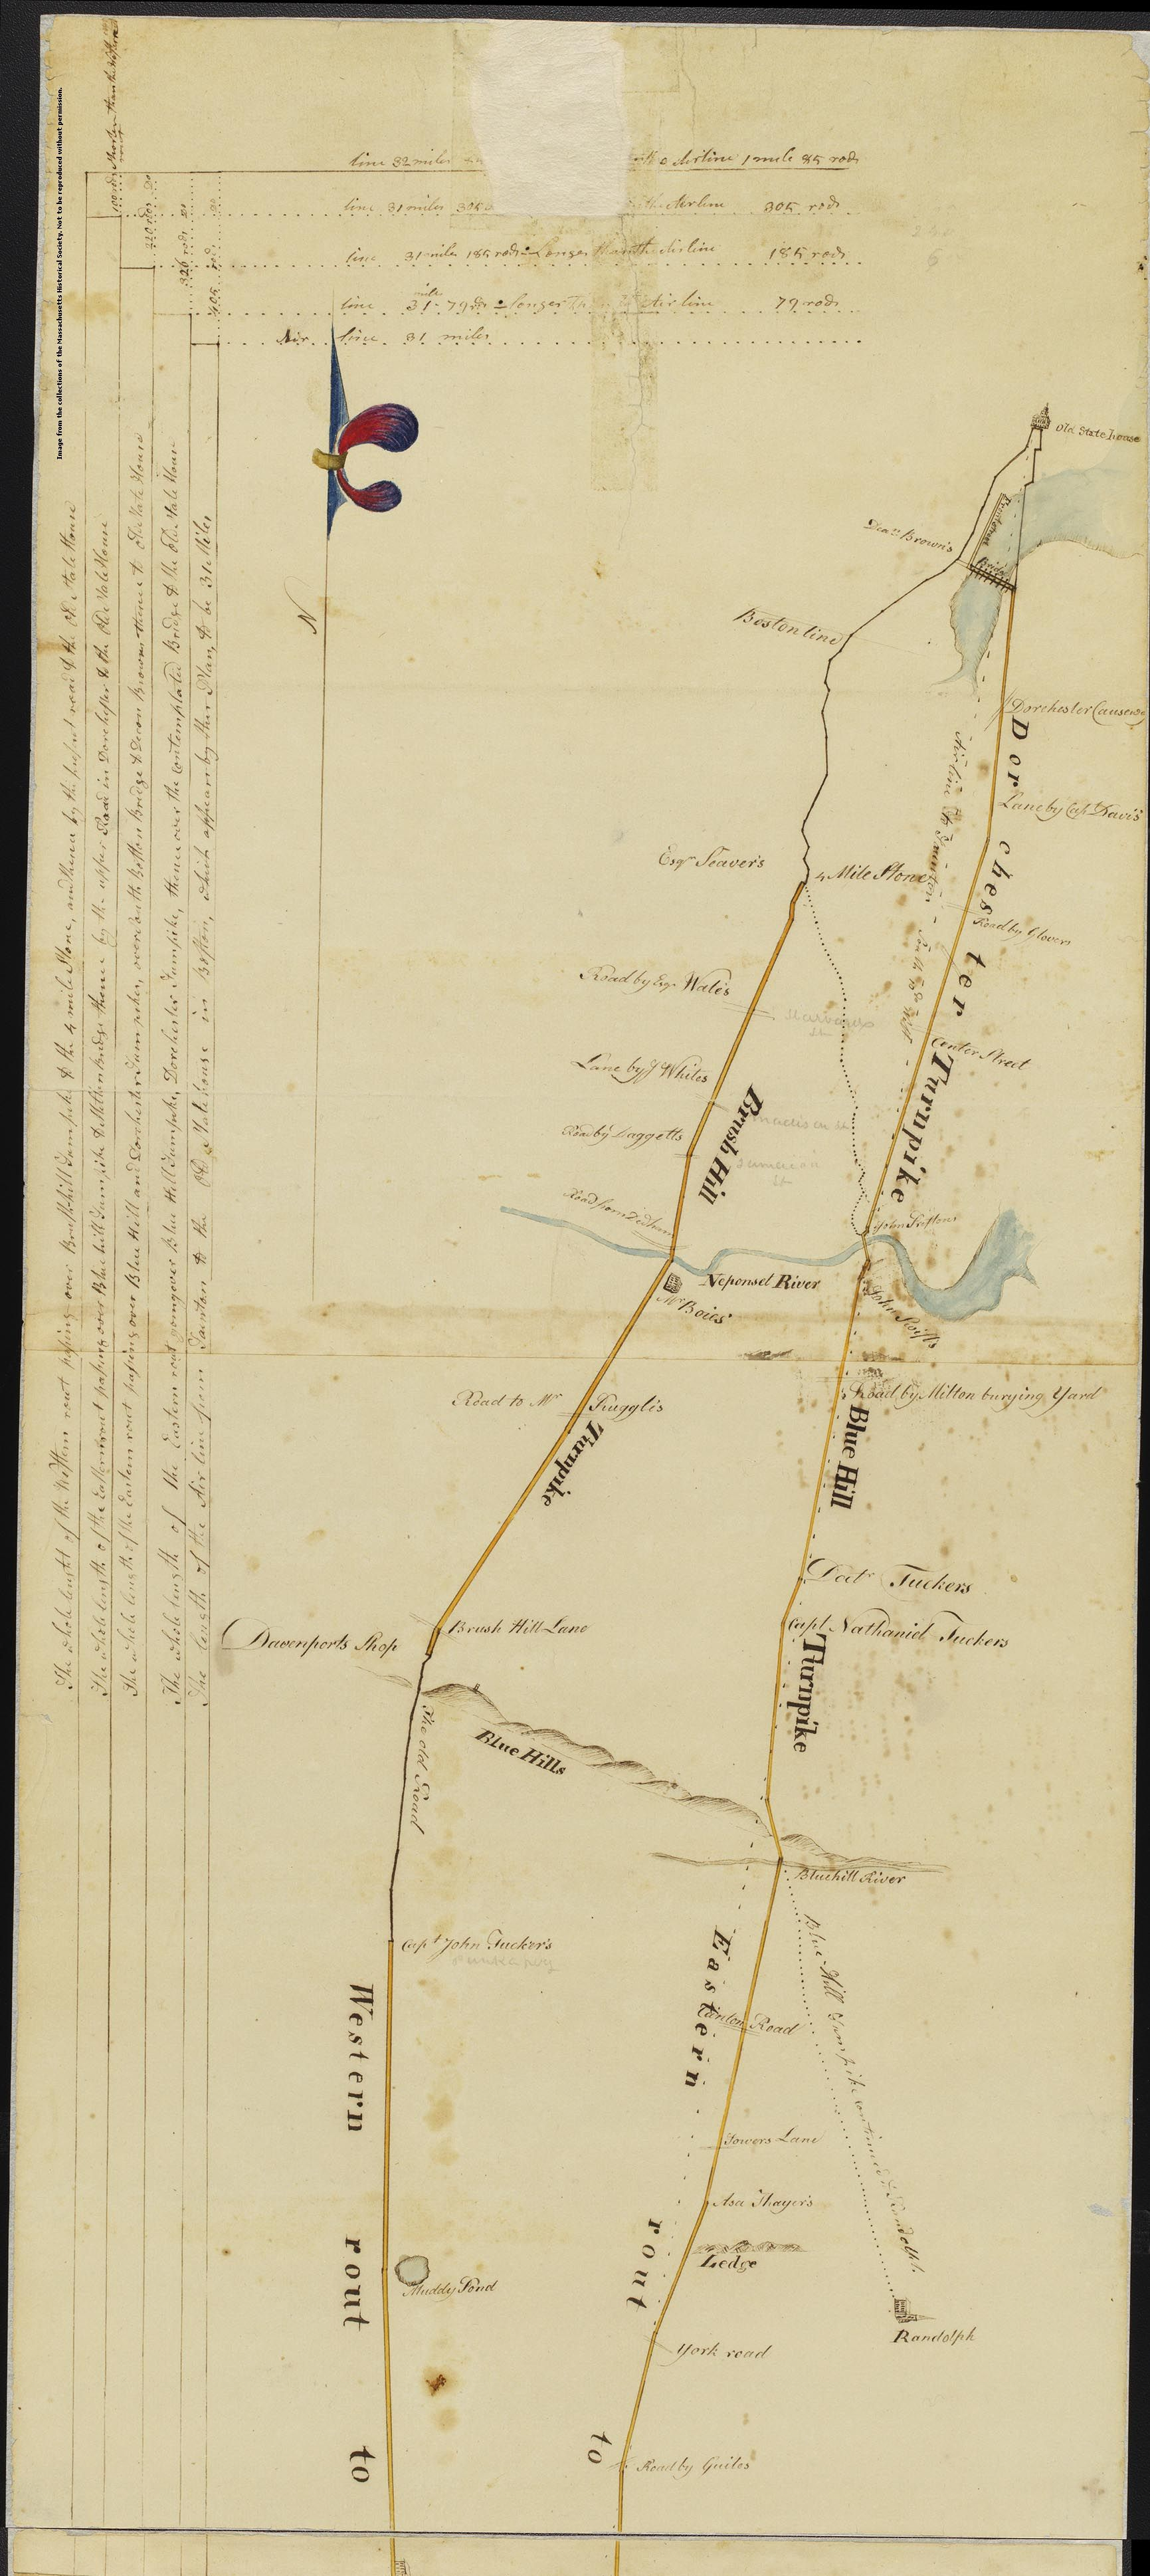 MHS Collections Online: Manuscript plan of the turnpike to Taunton, 1 April 1806